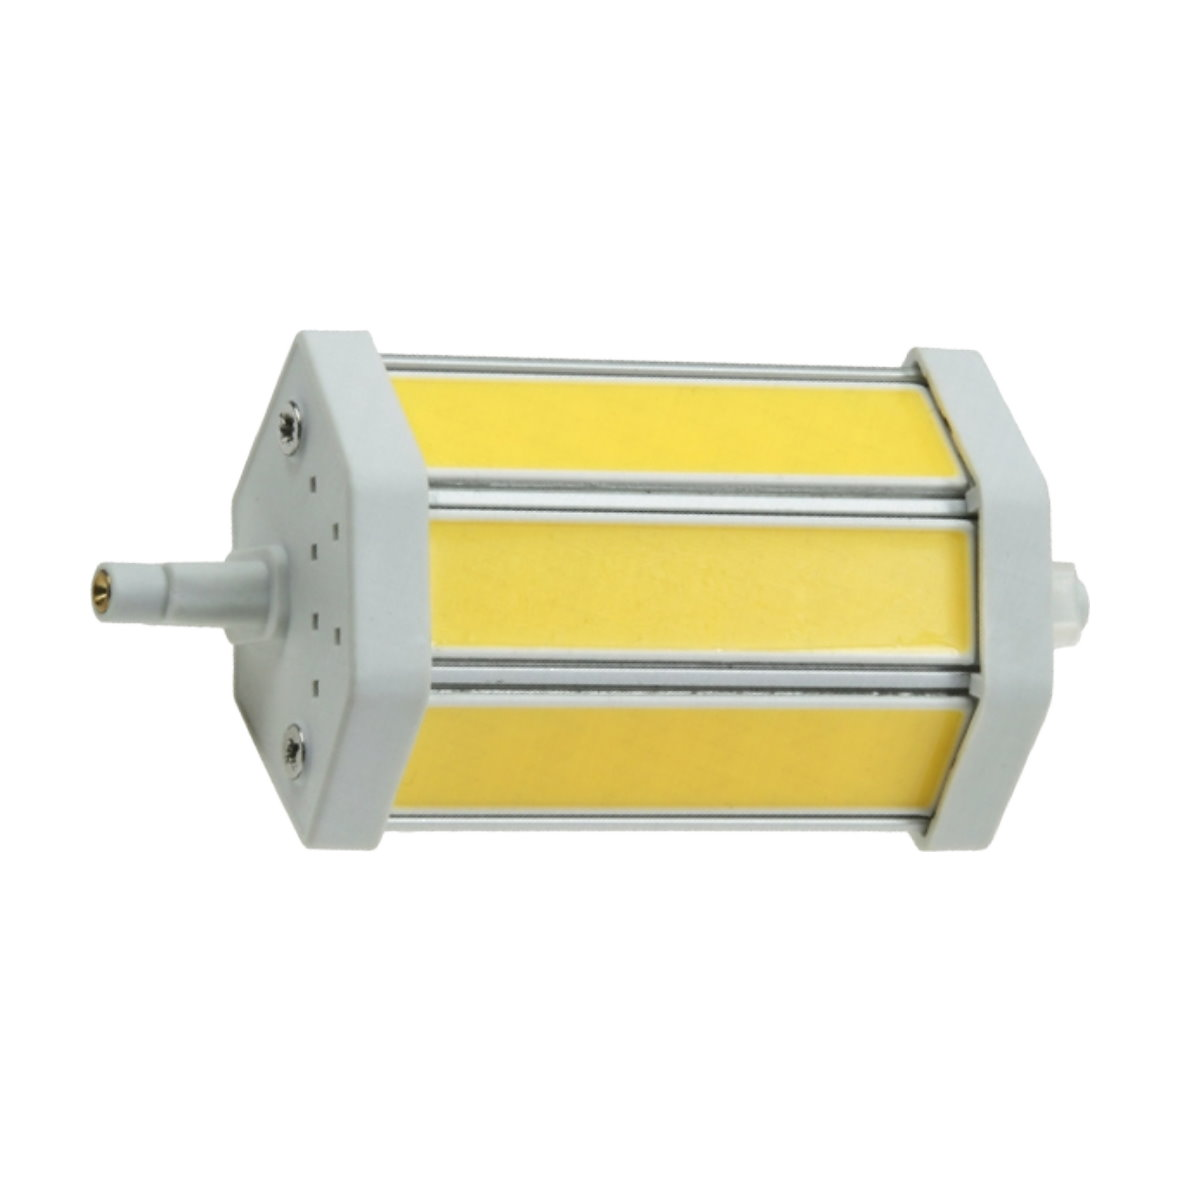 led leuchtmittel cob r7s dimmbar dimmable 78 118 mm deckenfluter stab halogen ebay. Black Bedroom Furniture Sets. Home Design Ideas